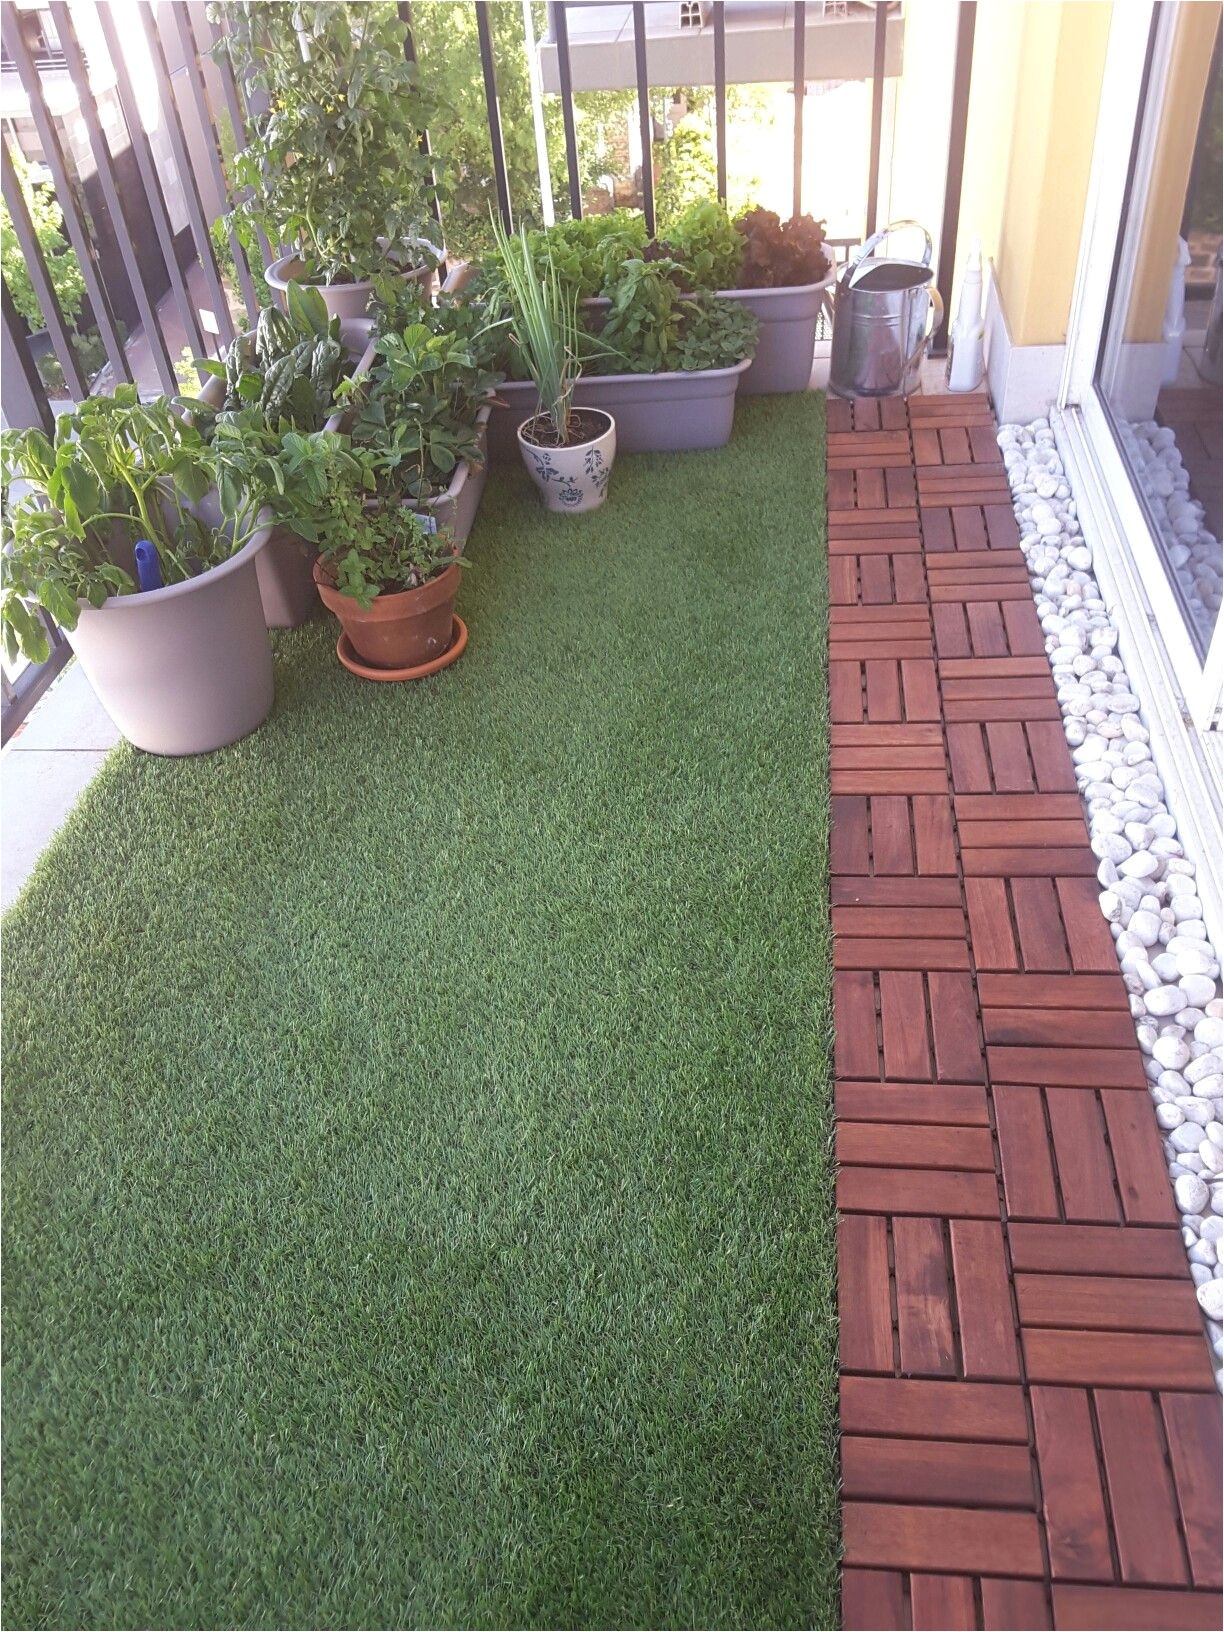 balcony with artificial grass decking and plants